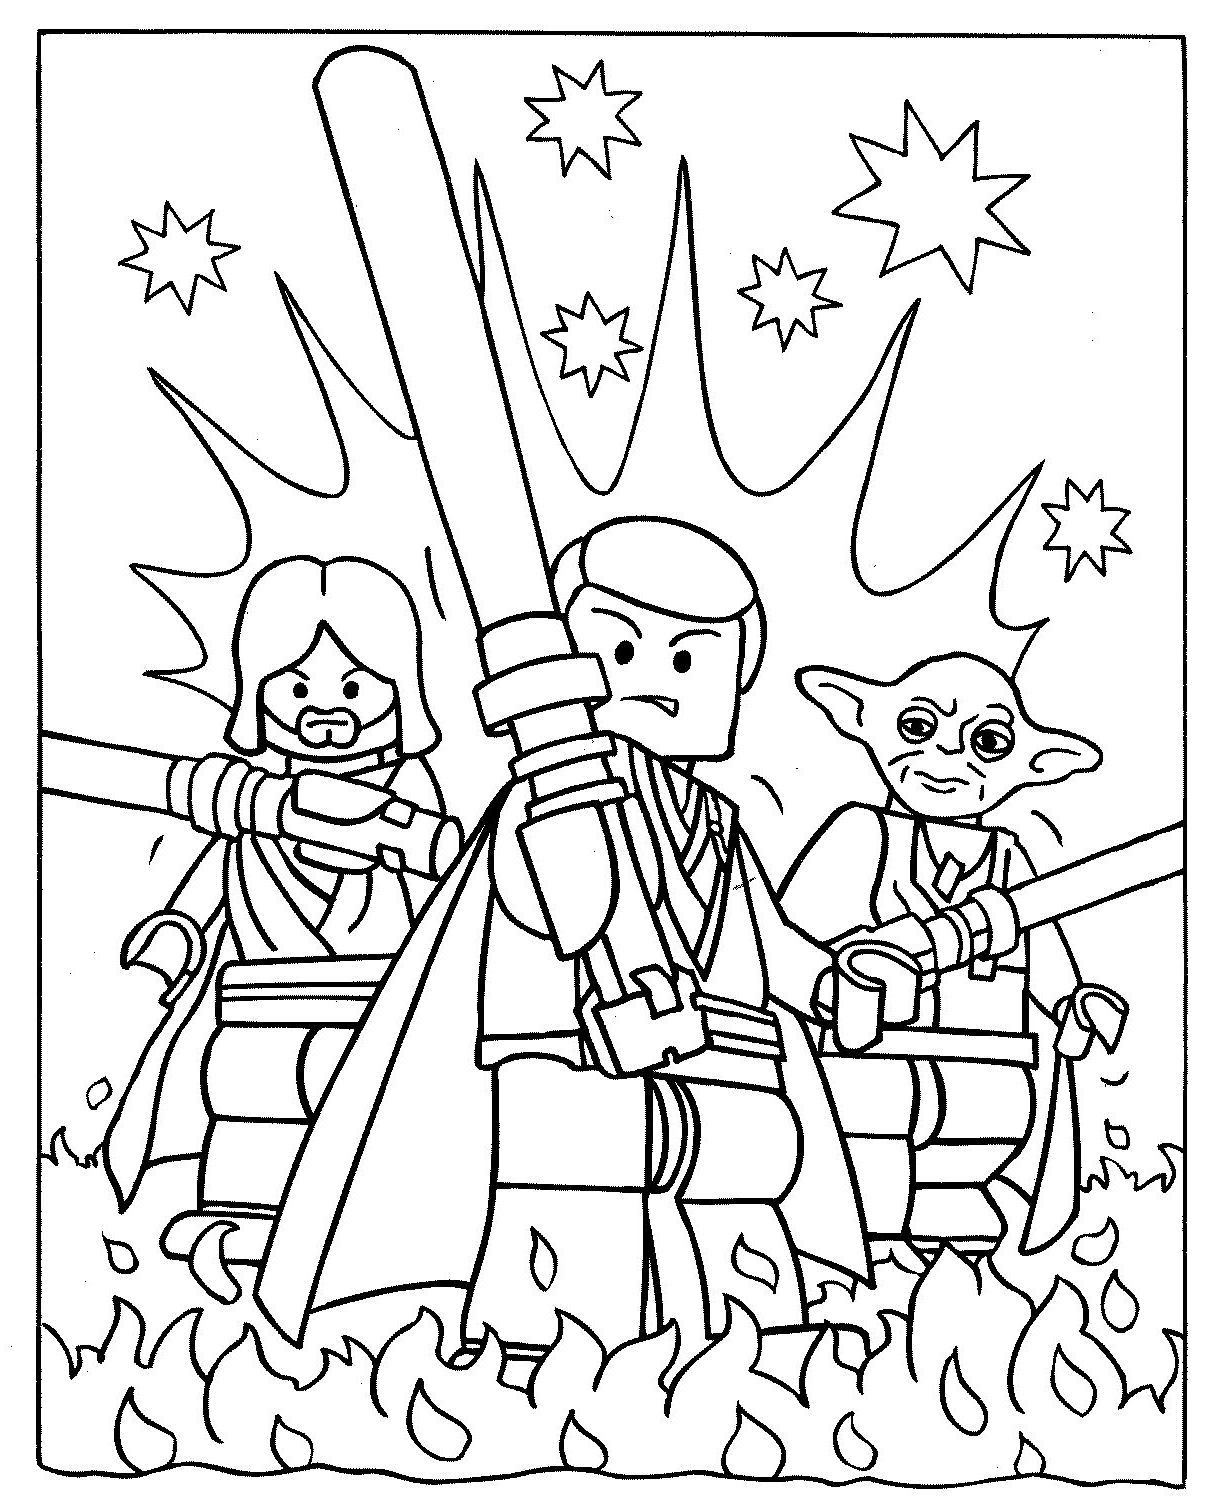 obi wan and luke skywalker  yoda coloring pages star